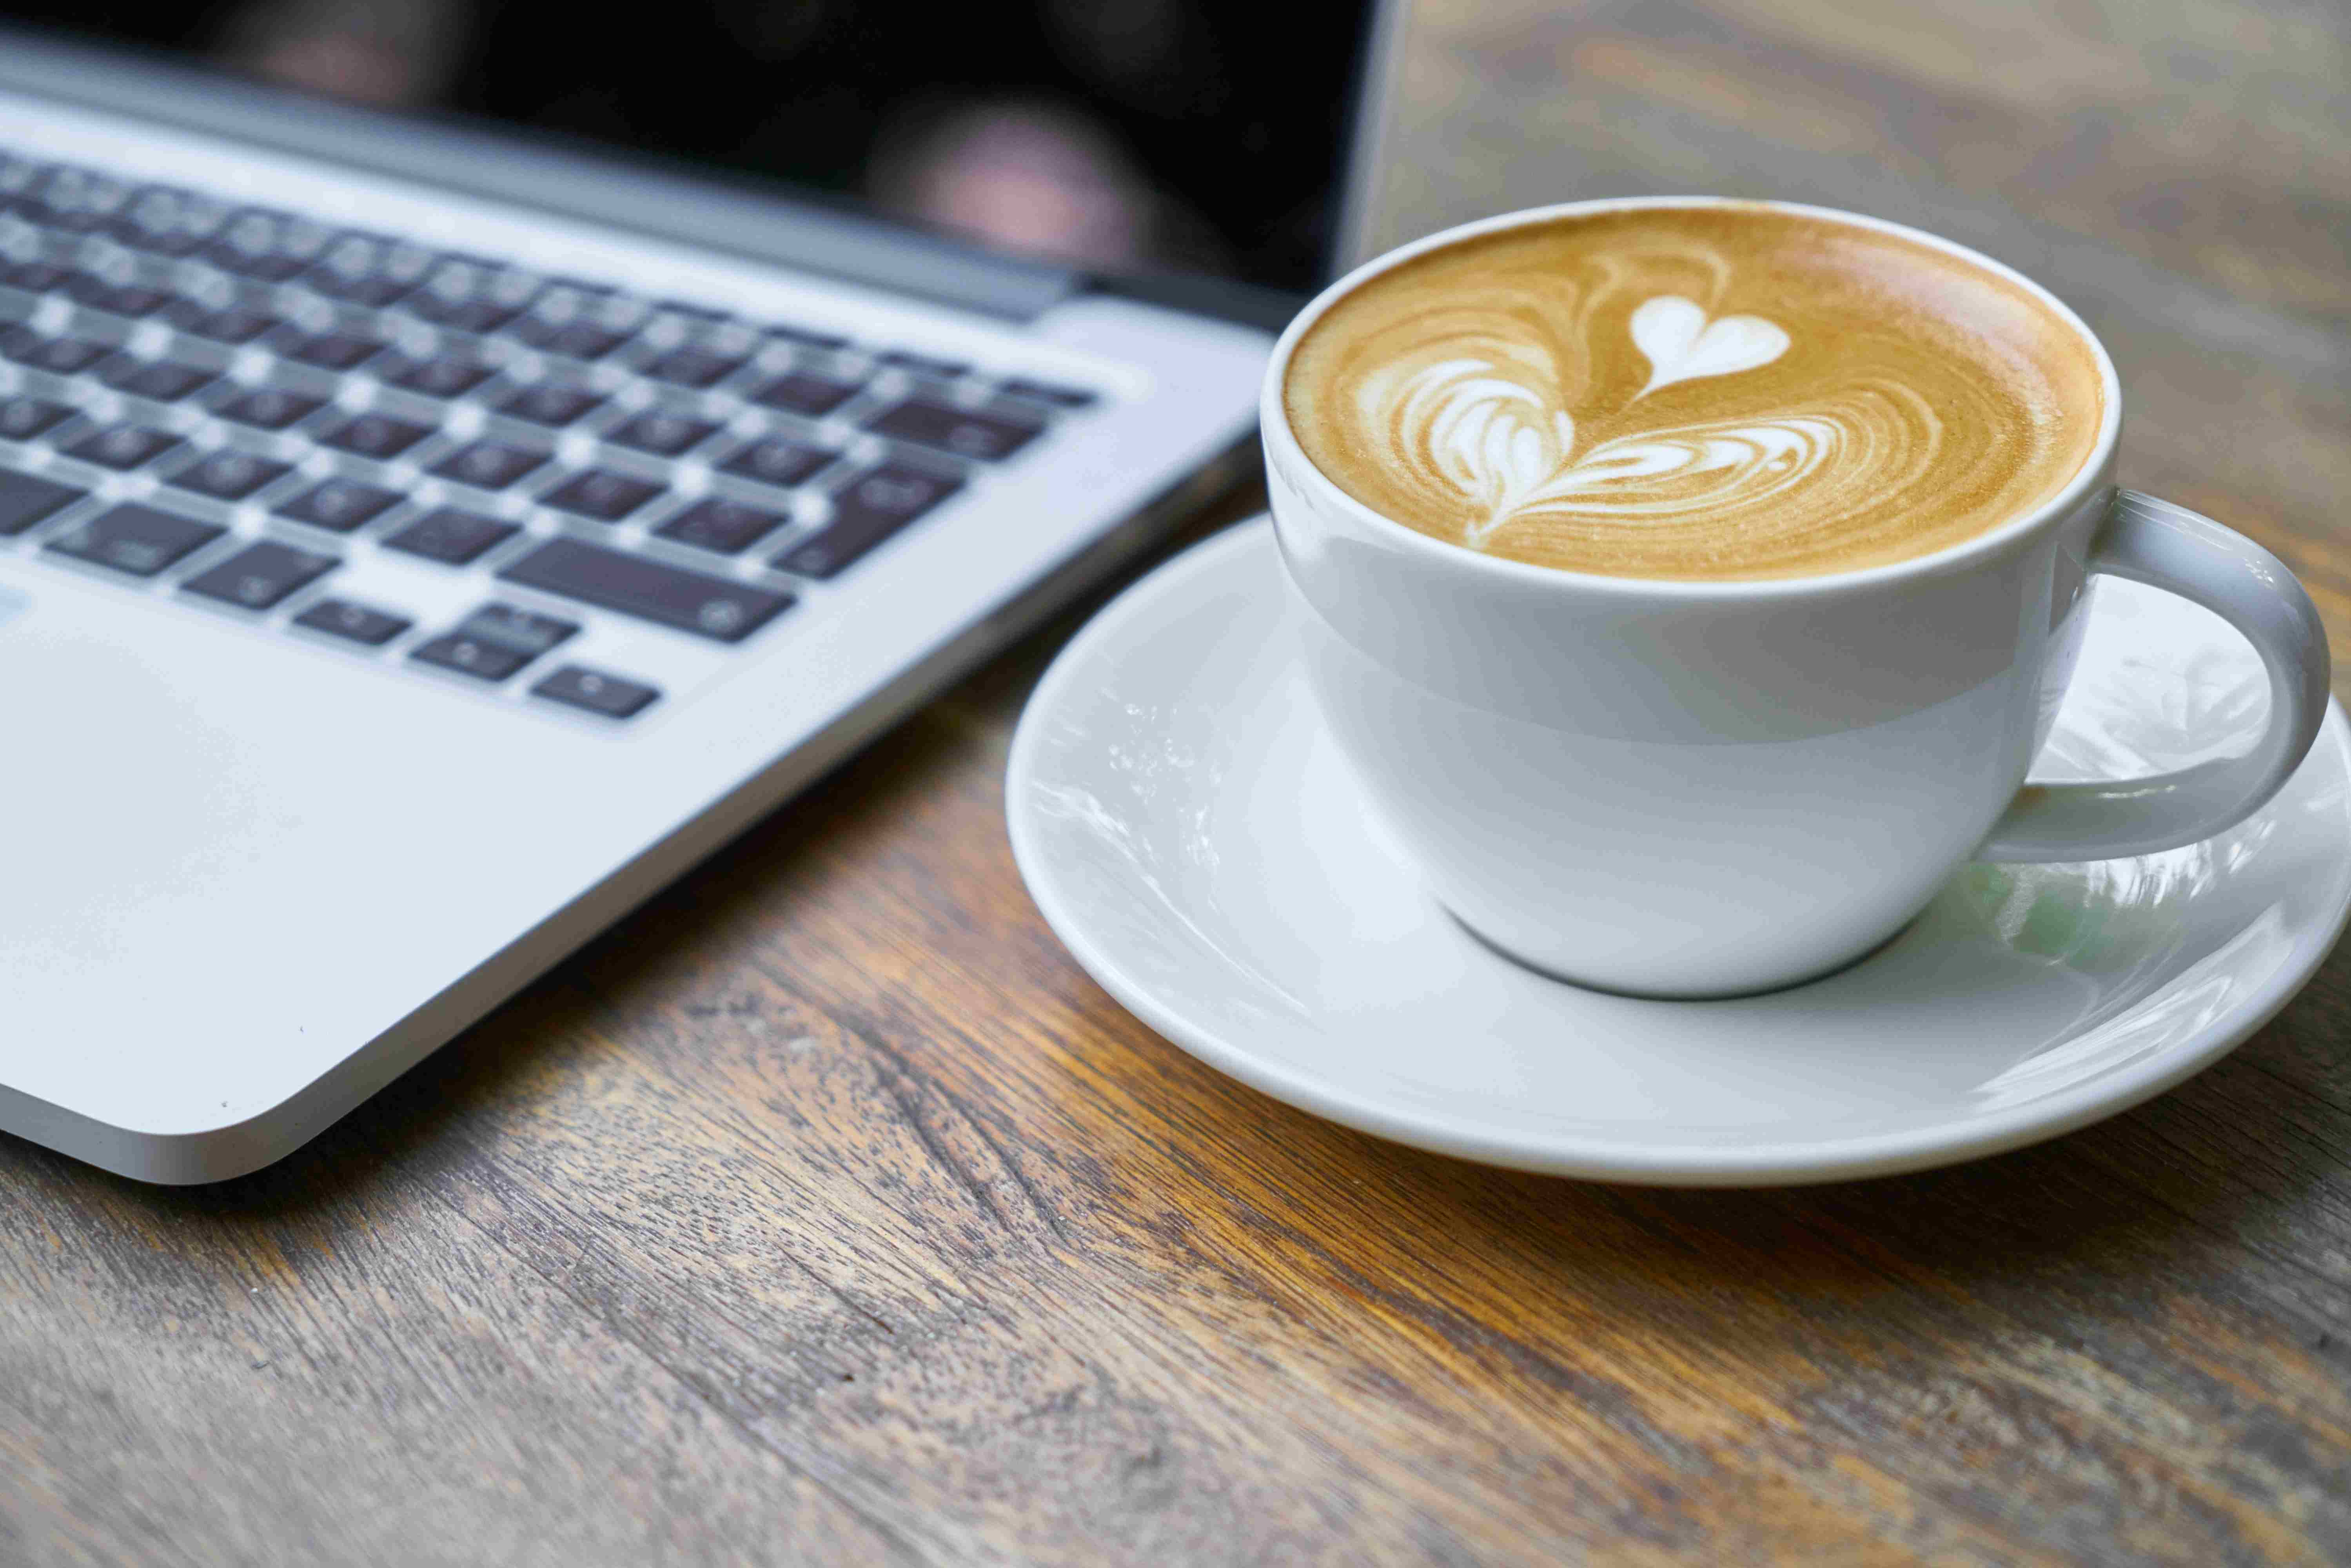 a cup of coffee on table in office break